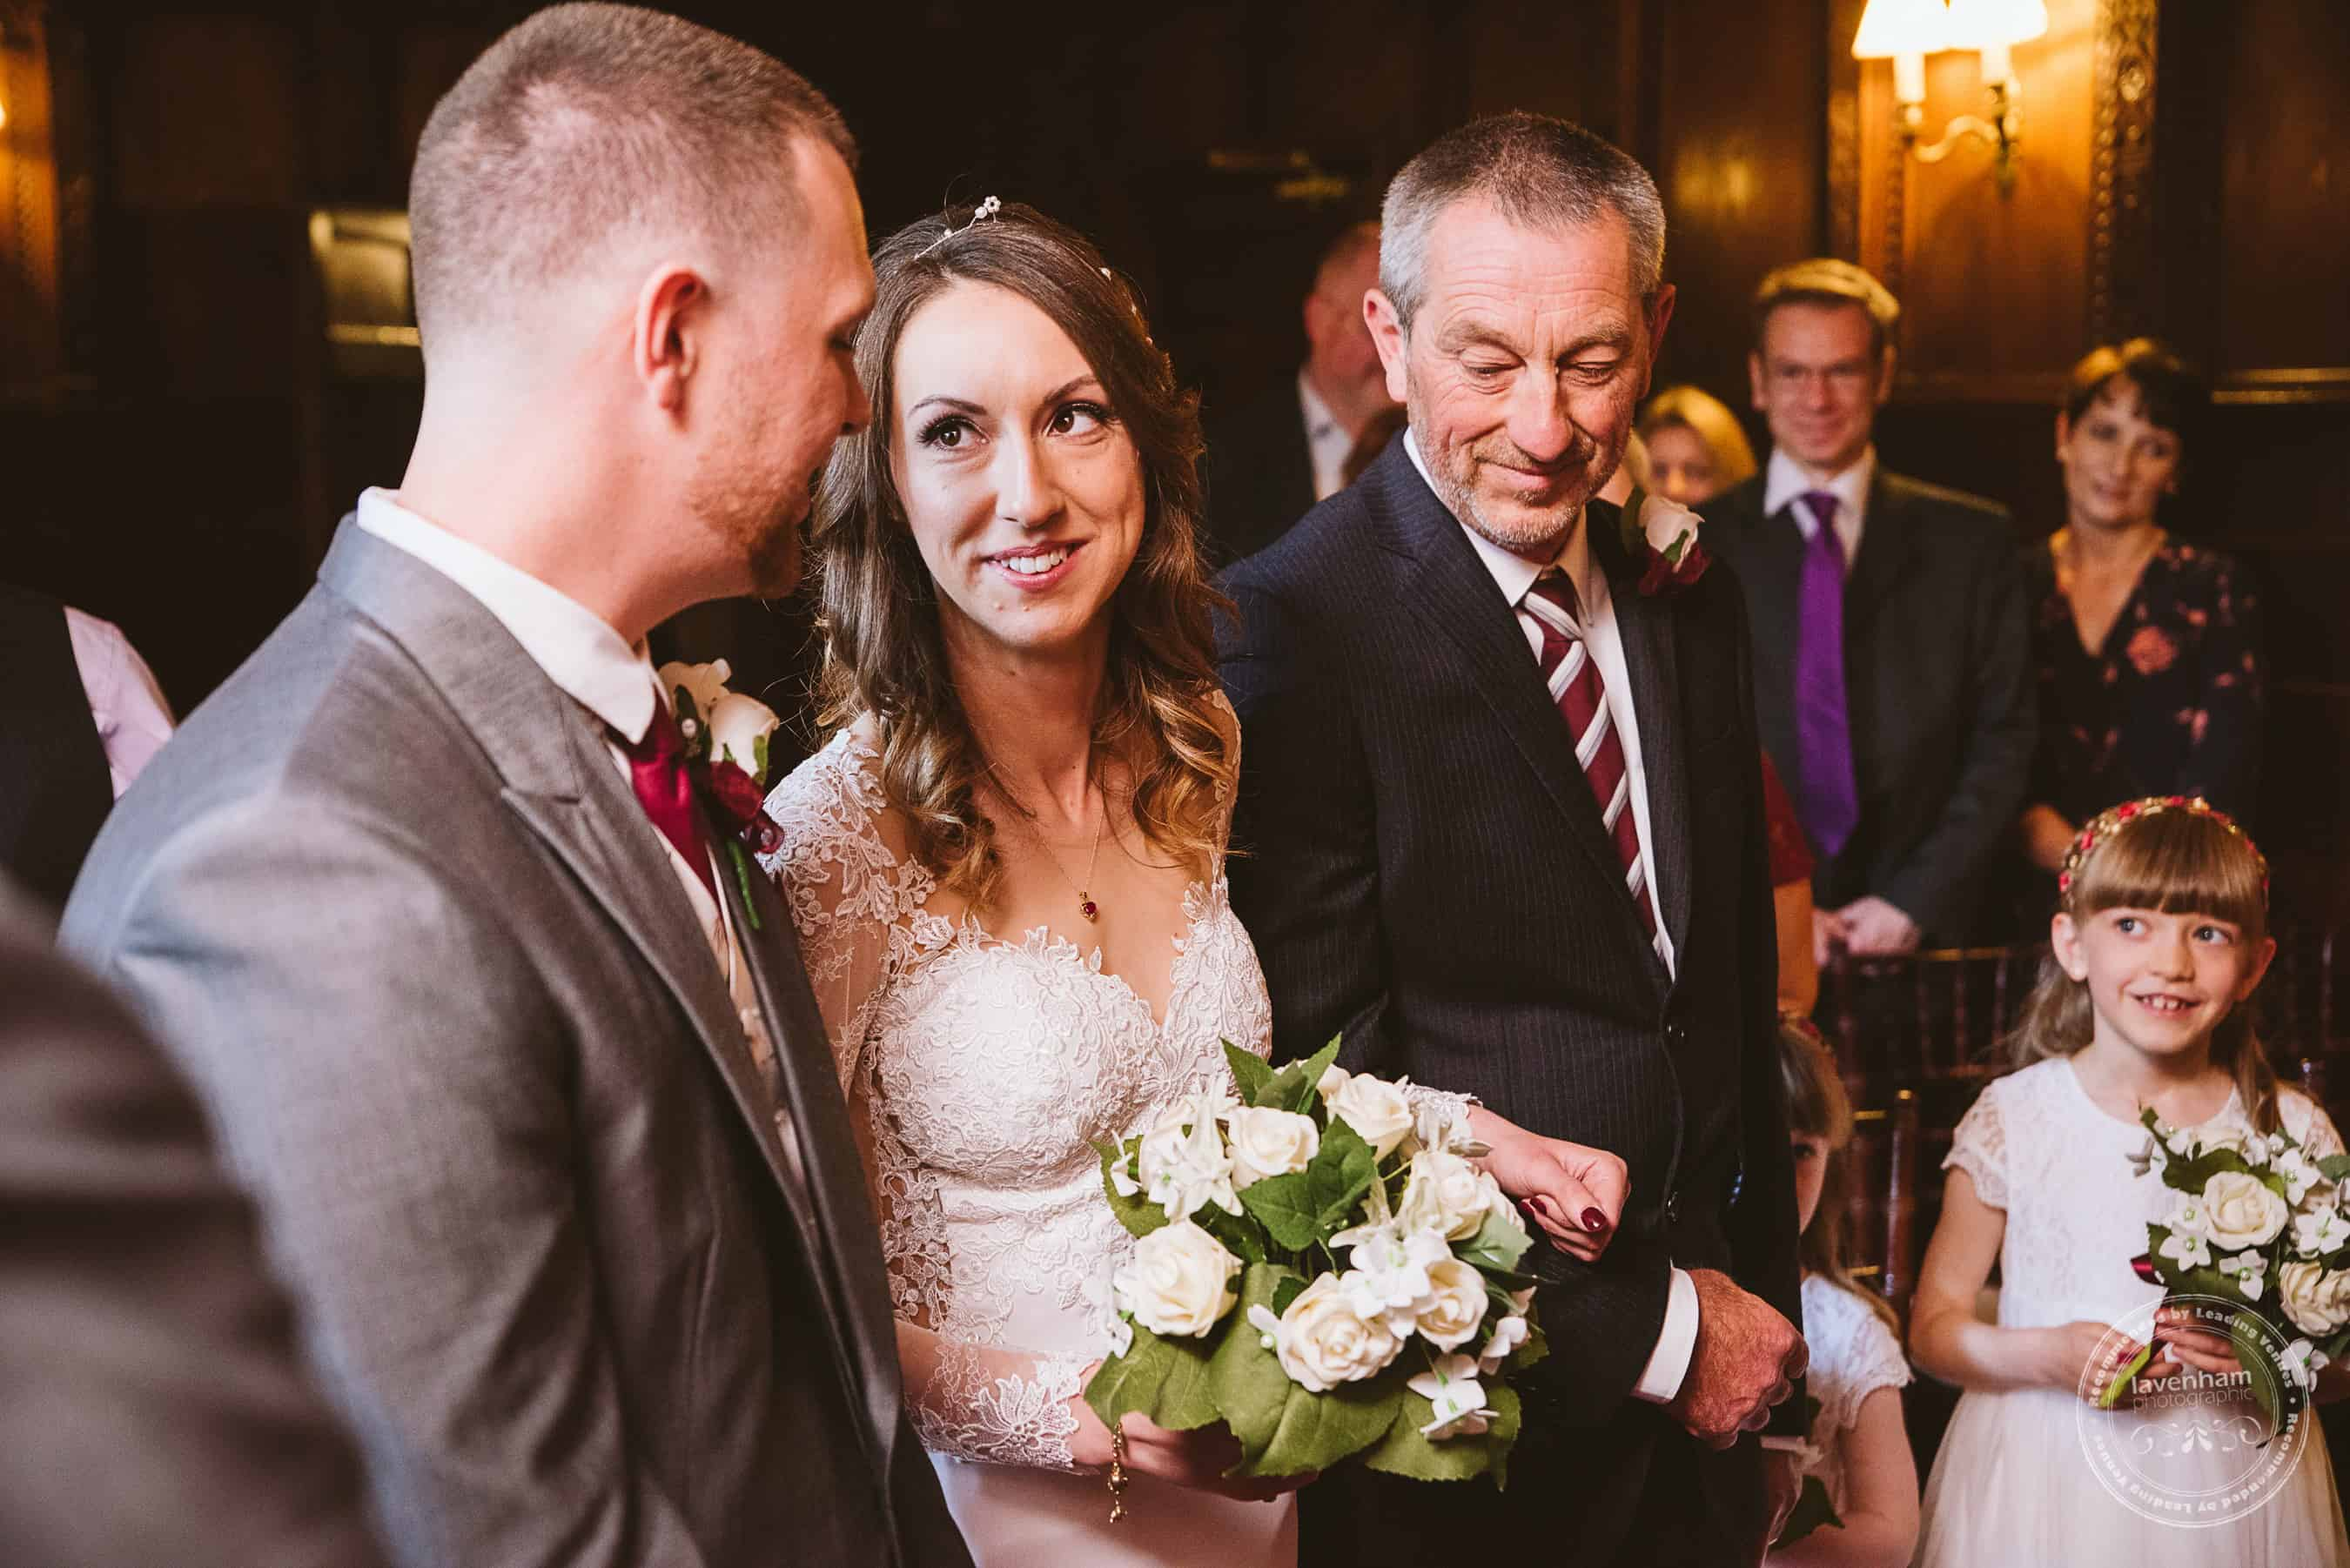 041118 Woodhall Manor Wedding Photography by Lavenham Photographic 037